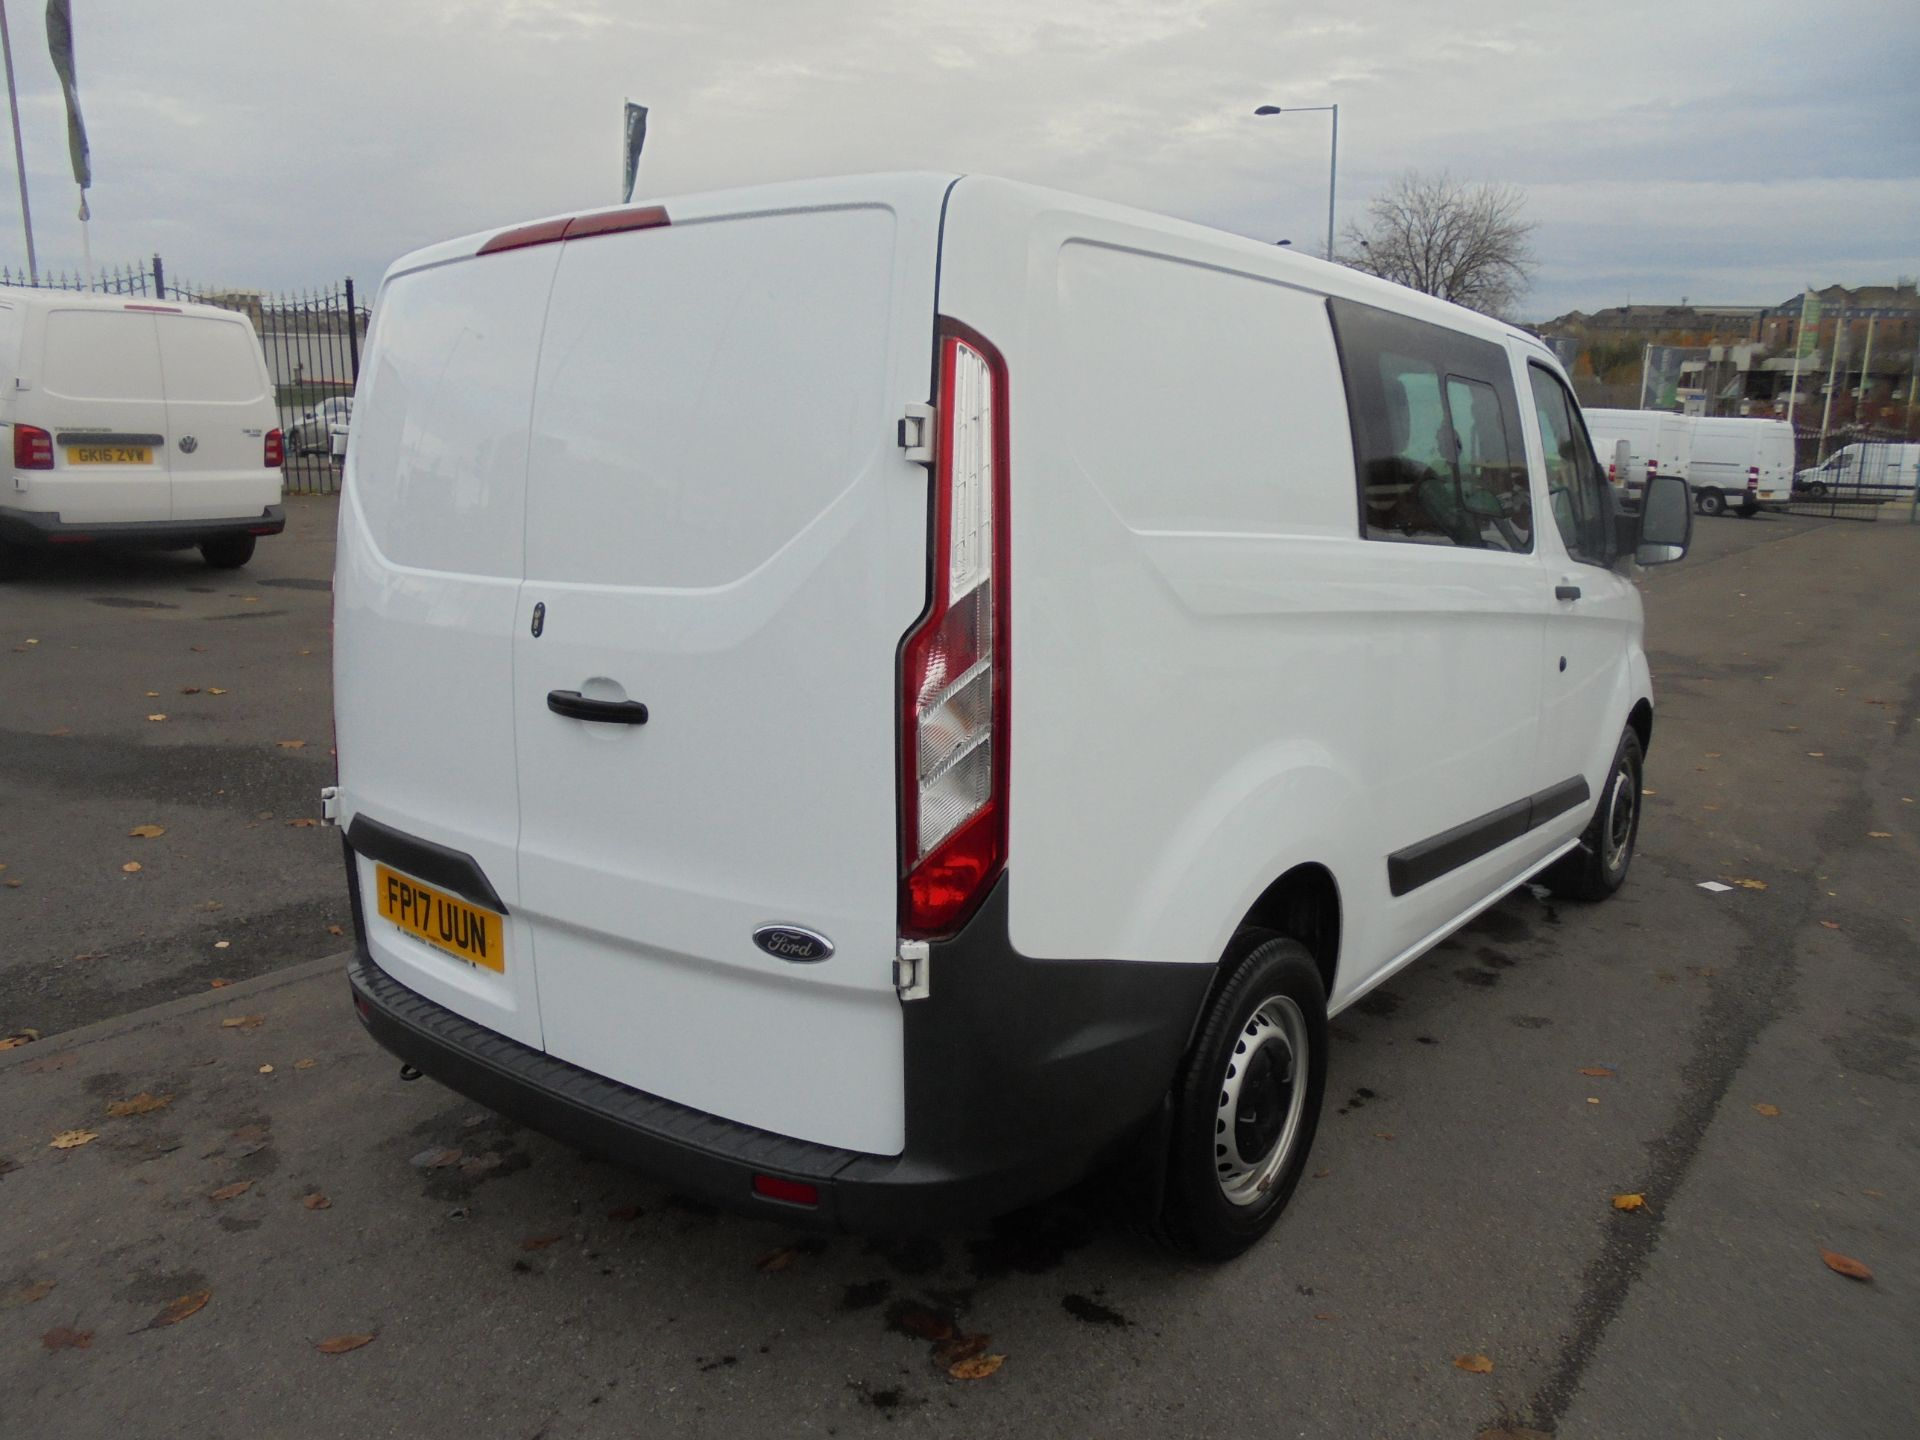 2017 Ford Transit Custom  290 L1 2.0TDCI DOUBLE CAB LOW ROOF 105PS EURO 6 (FP17UUN) Image 25